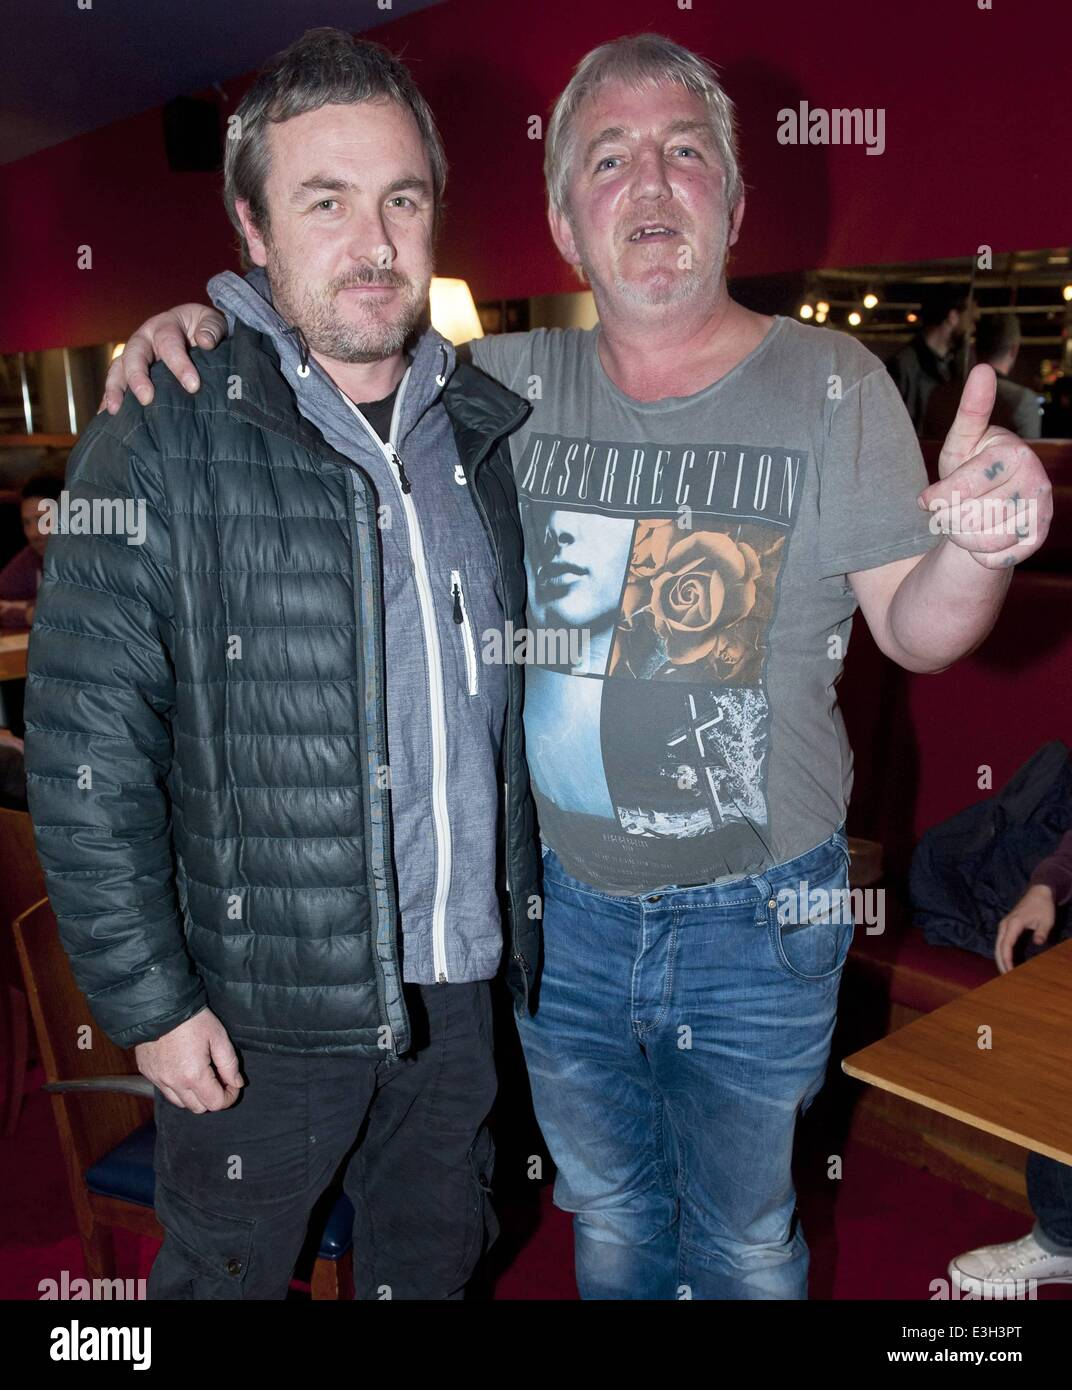 guests attend a private screening of jeff doyle s dark comedy jack ralph plan a murder at cineworld many of the love hate cast in attendance featuring stuart carolan stephen clinch where dublin